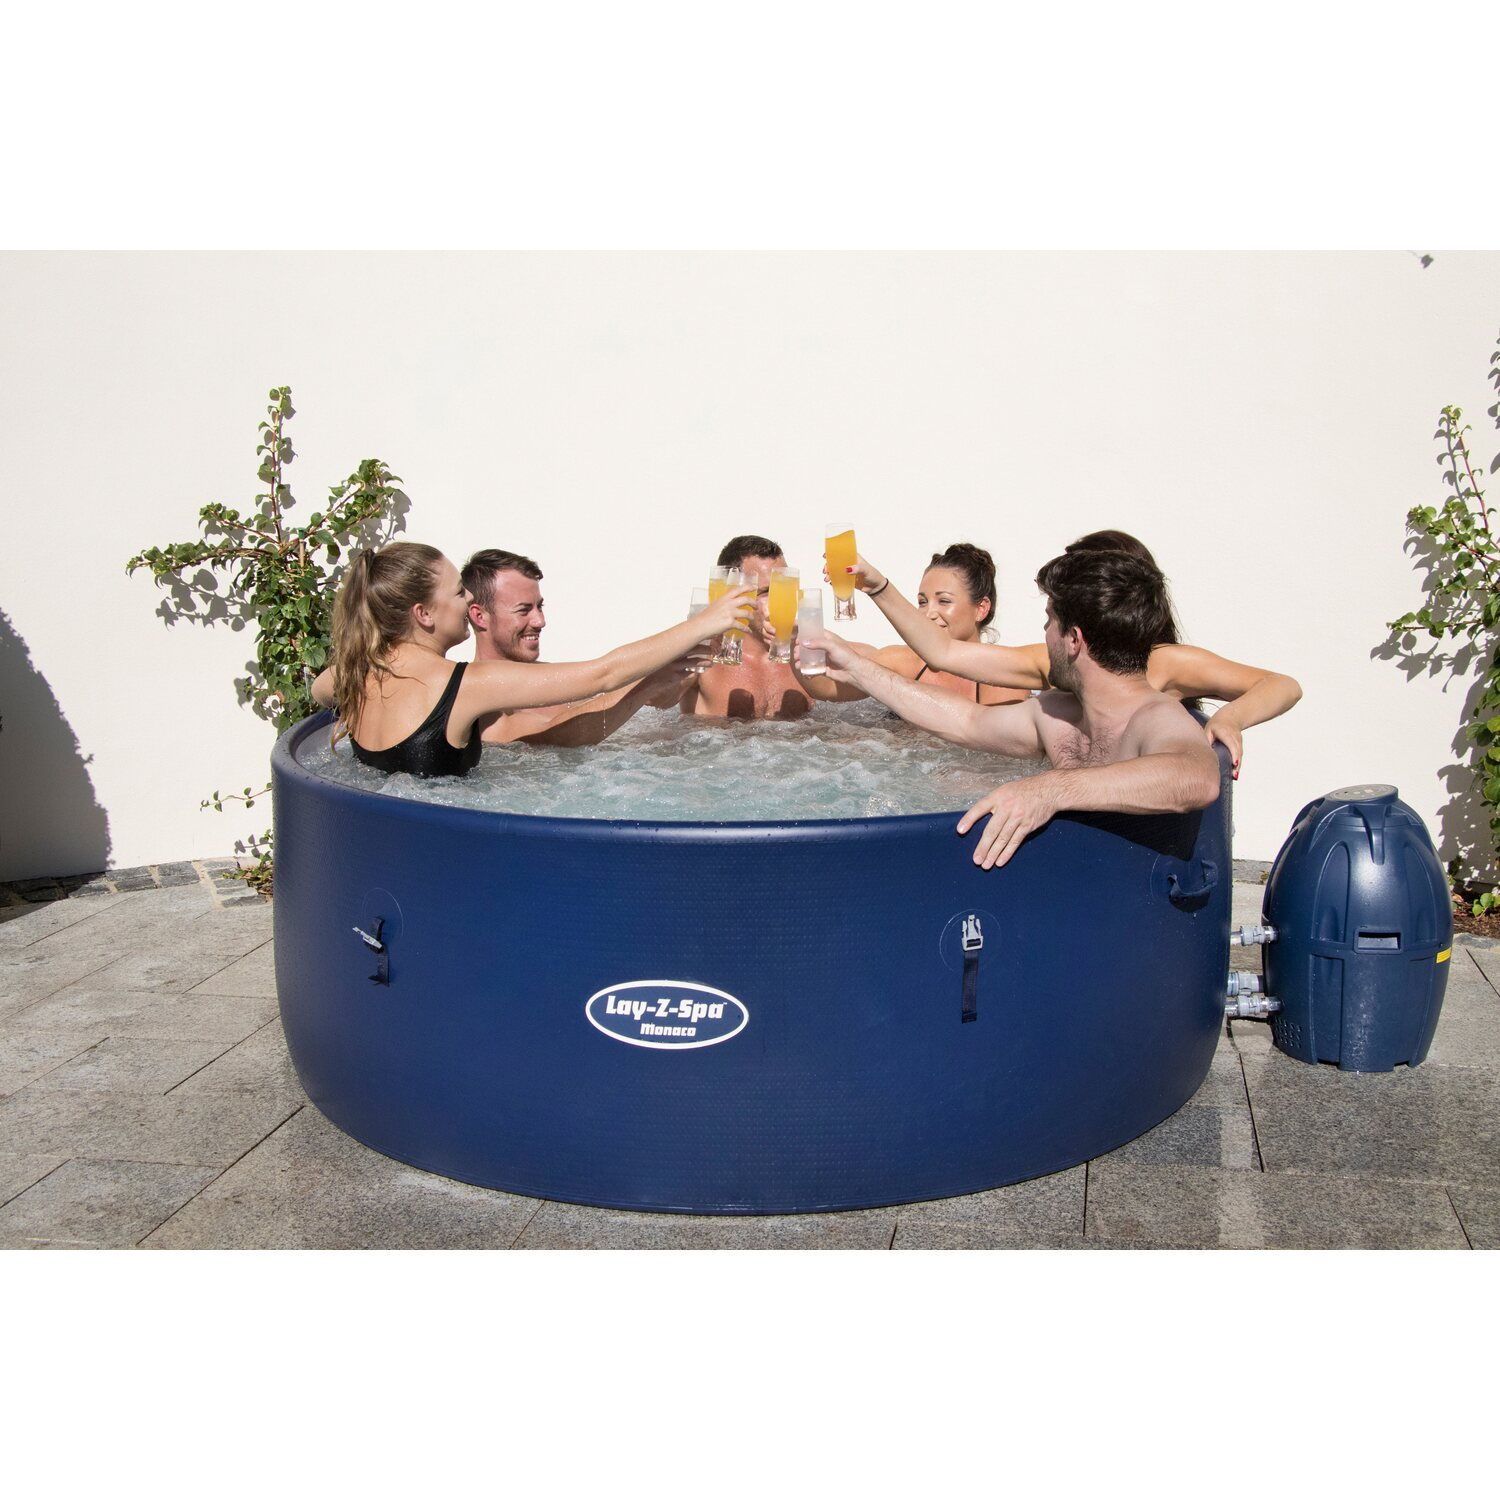 Bestway whirlpool lay z spa monaco airjet 201 cm x 69 cm for Bestway pool bei obi